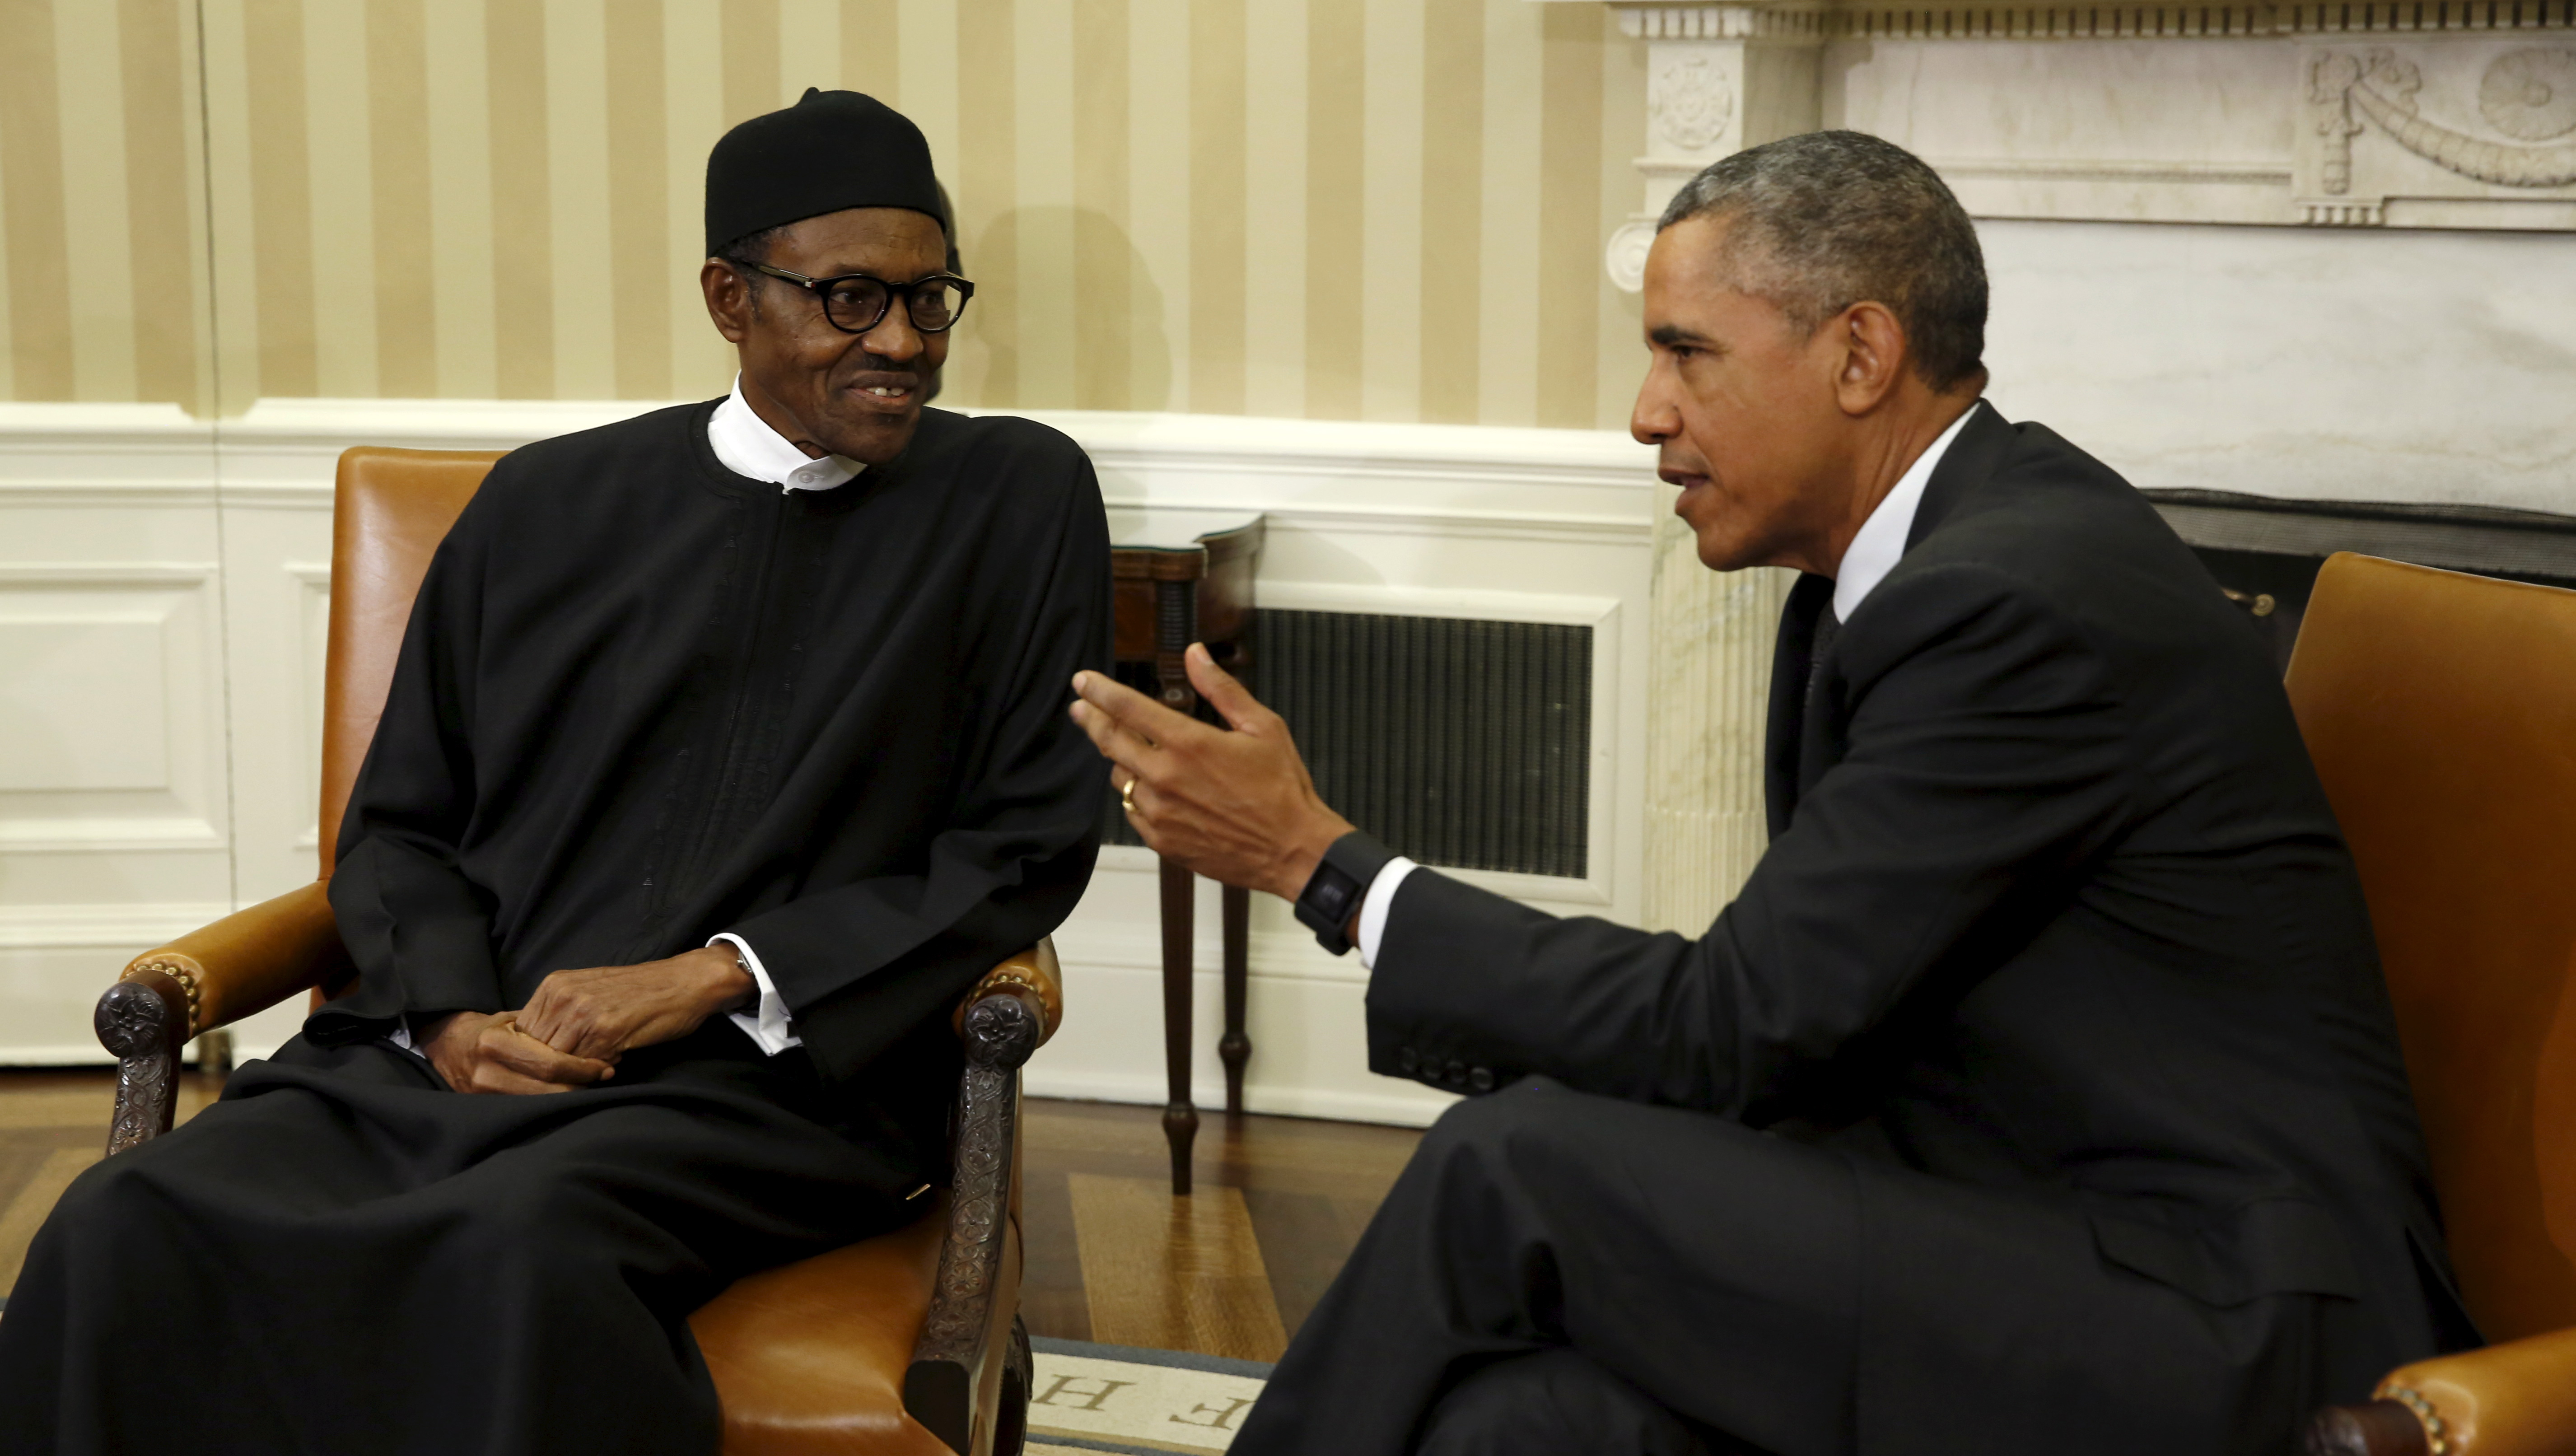 U.S President Obama speaking with Nigerian President Buhari